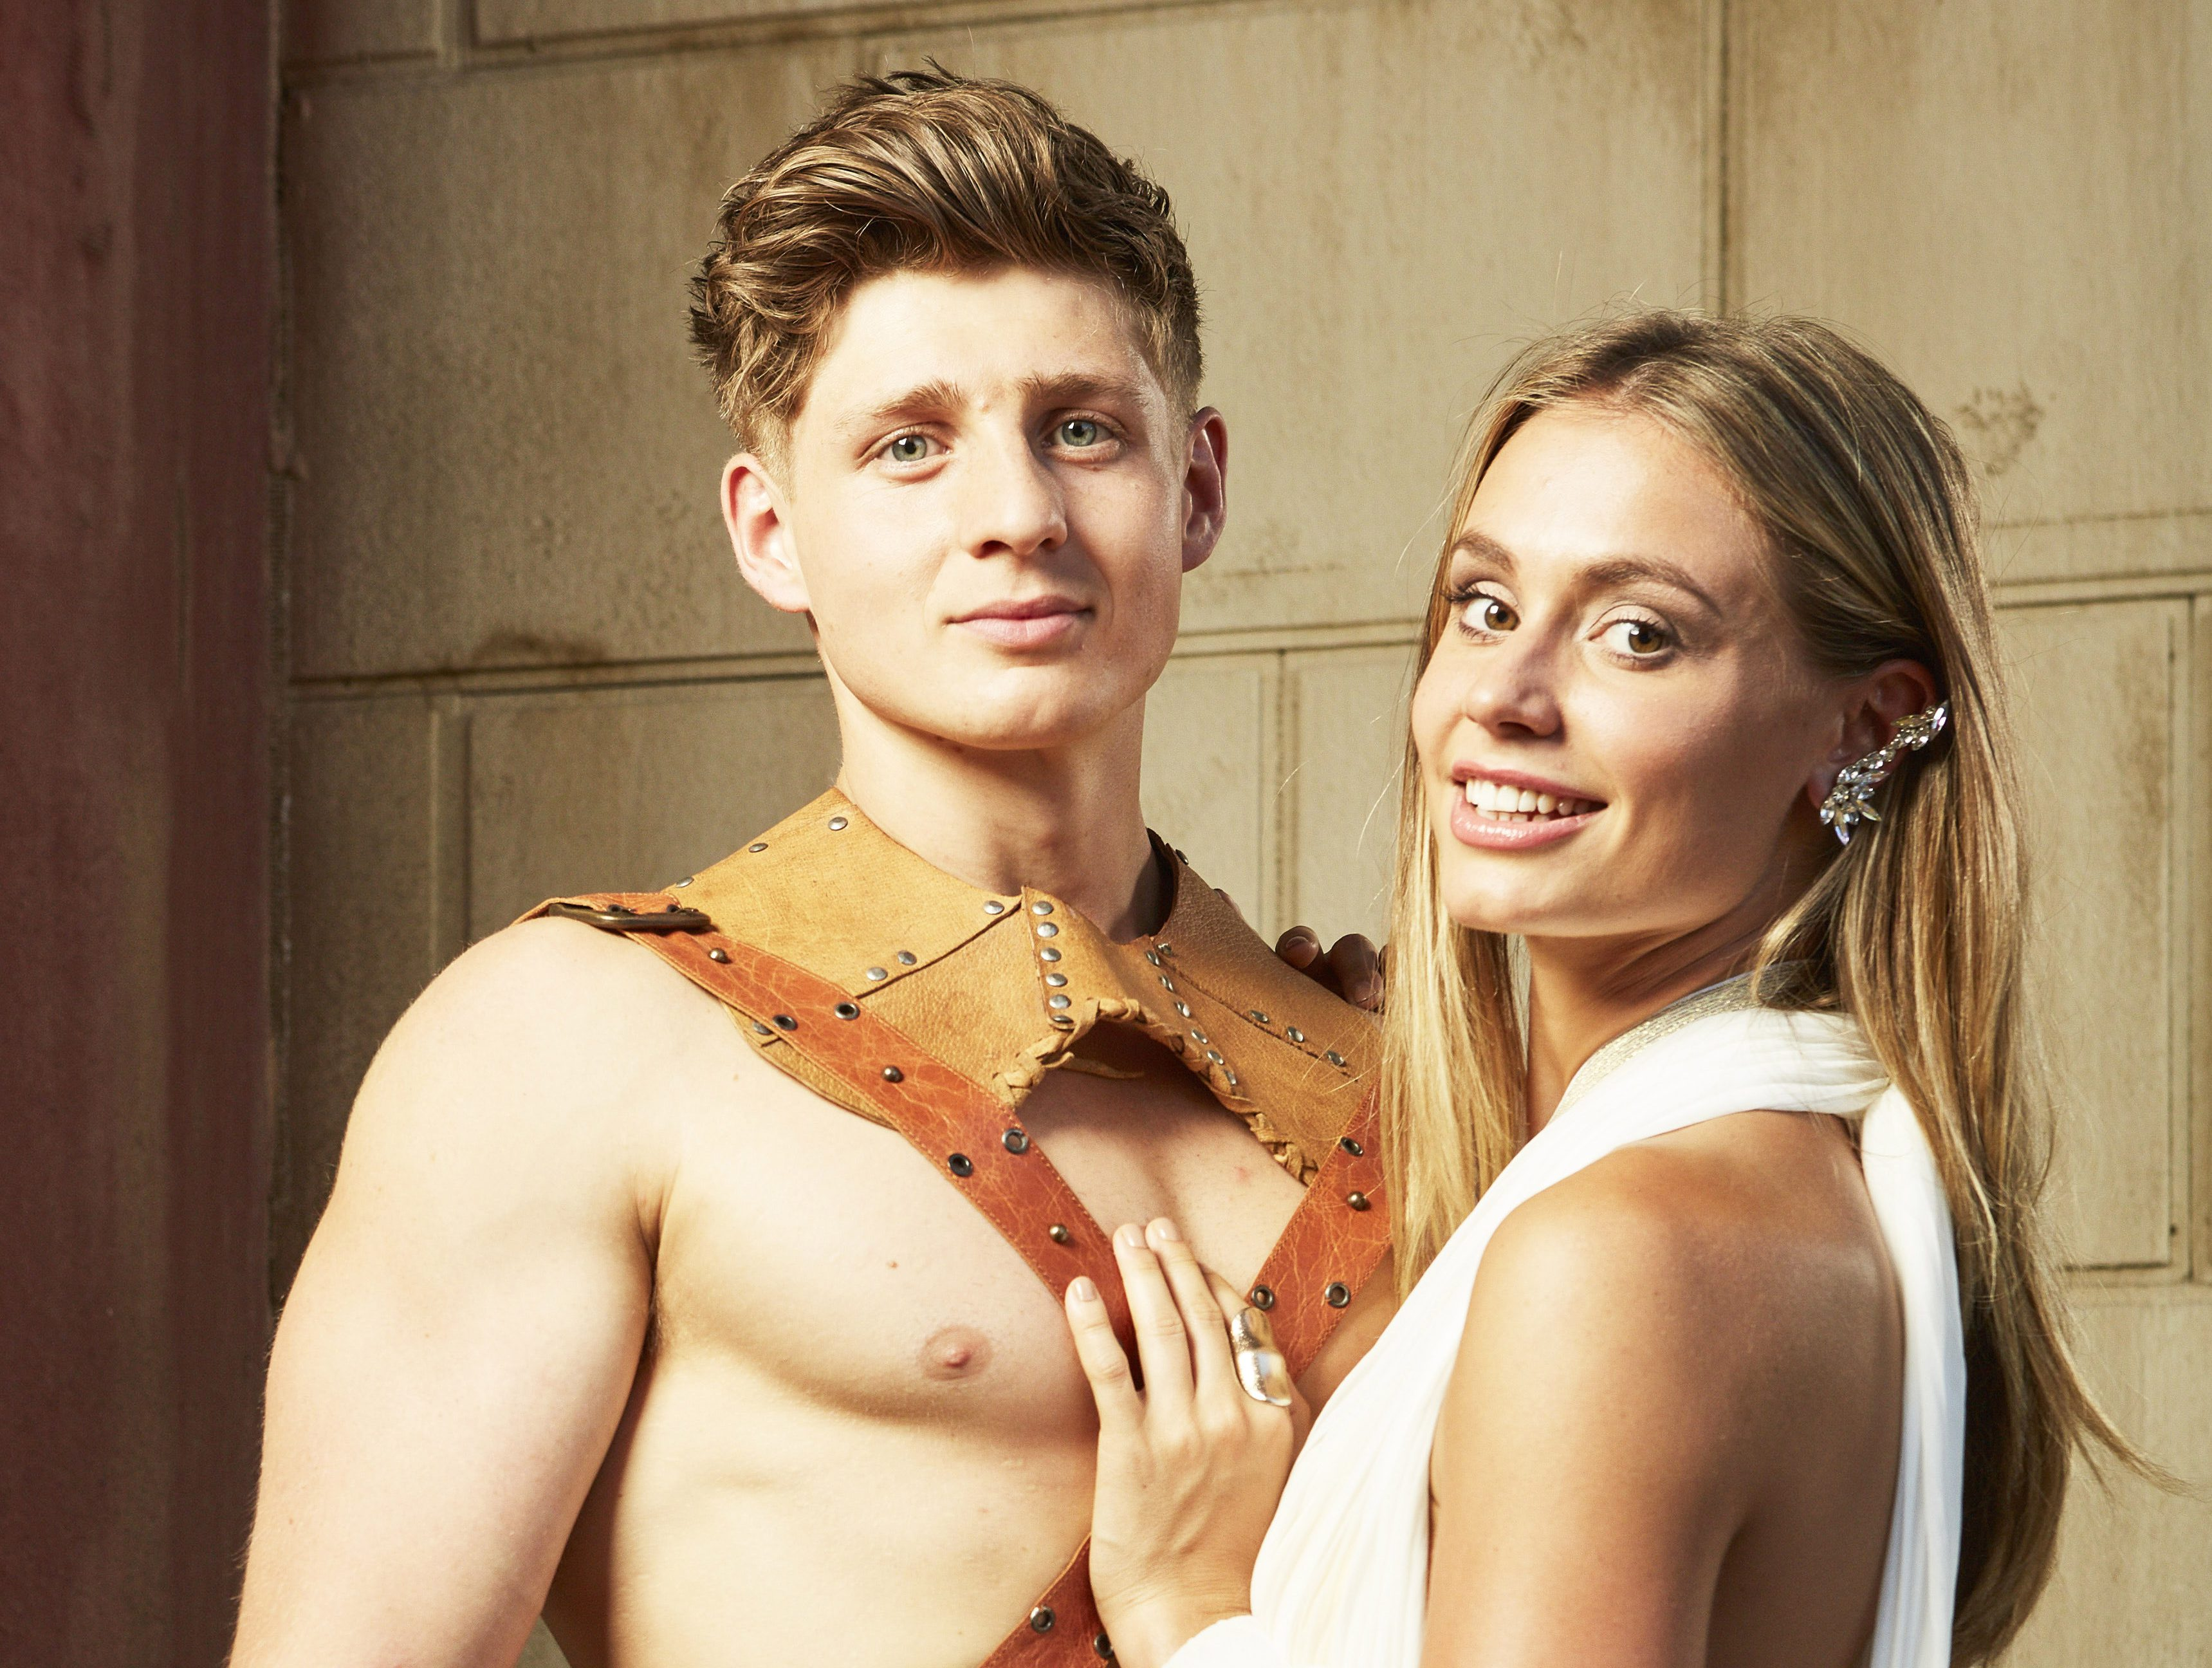 Bromans' Tom admits: 'I bonded with the gold briefs and I've worn them ever since'